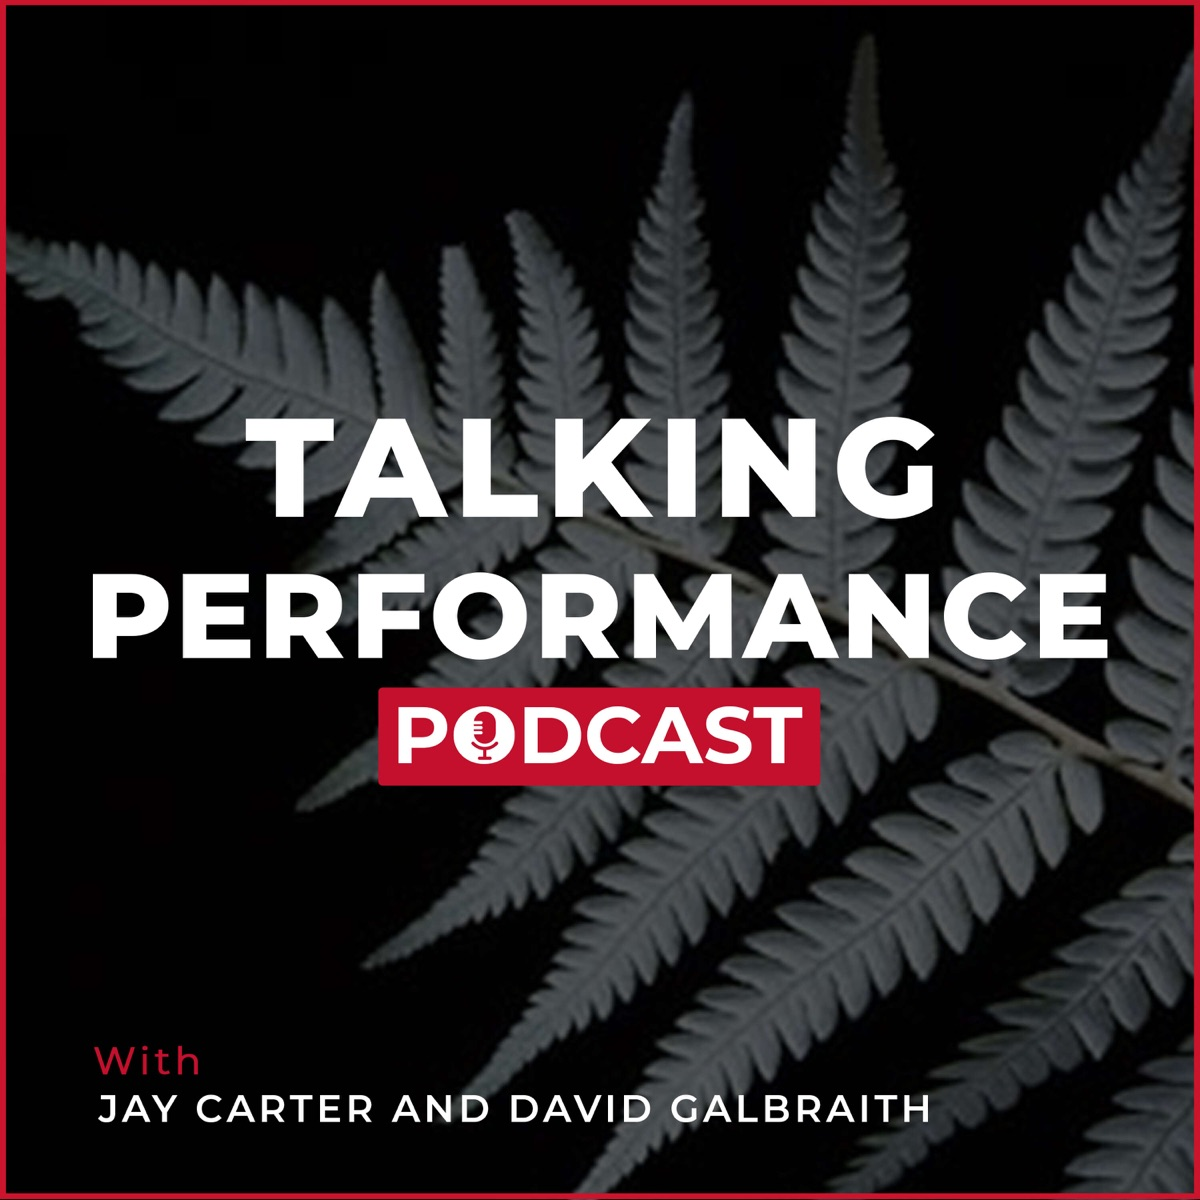 Talking Performance Episode 41 - Book Club